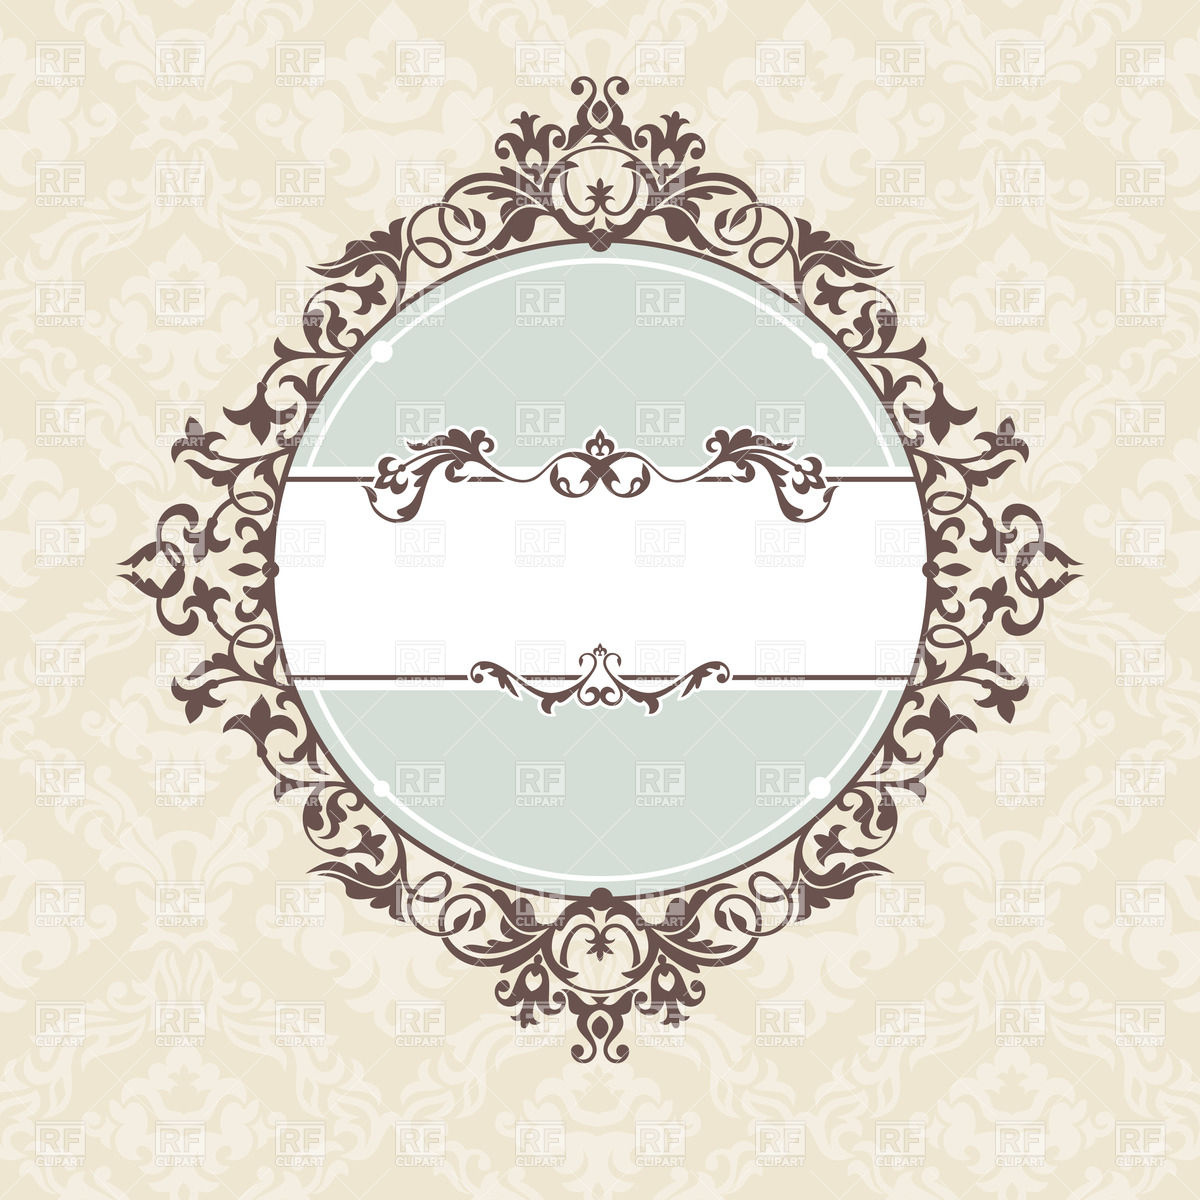 Round and square vintage frames with curly elements on damask.